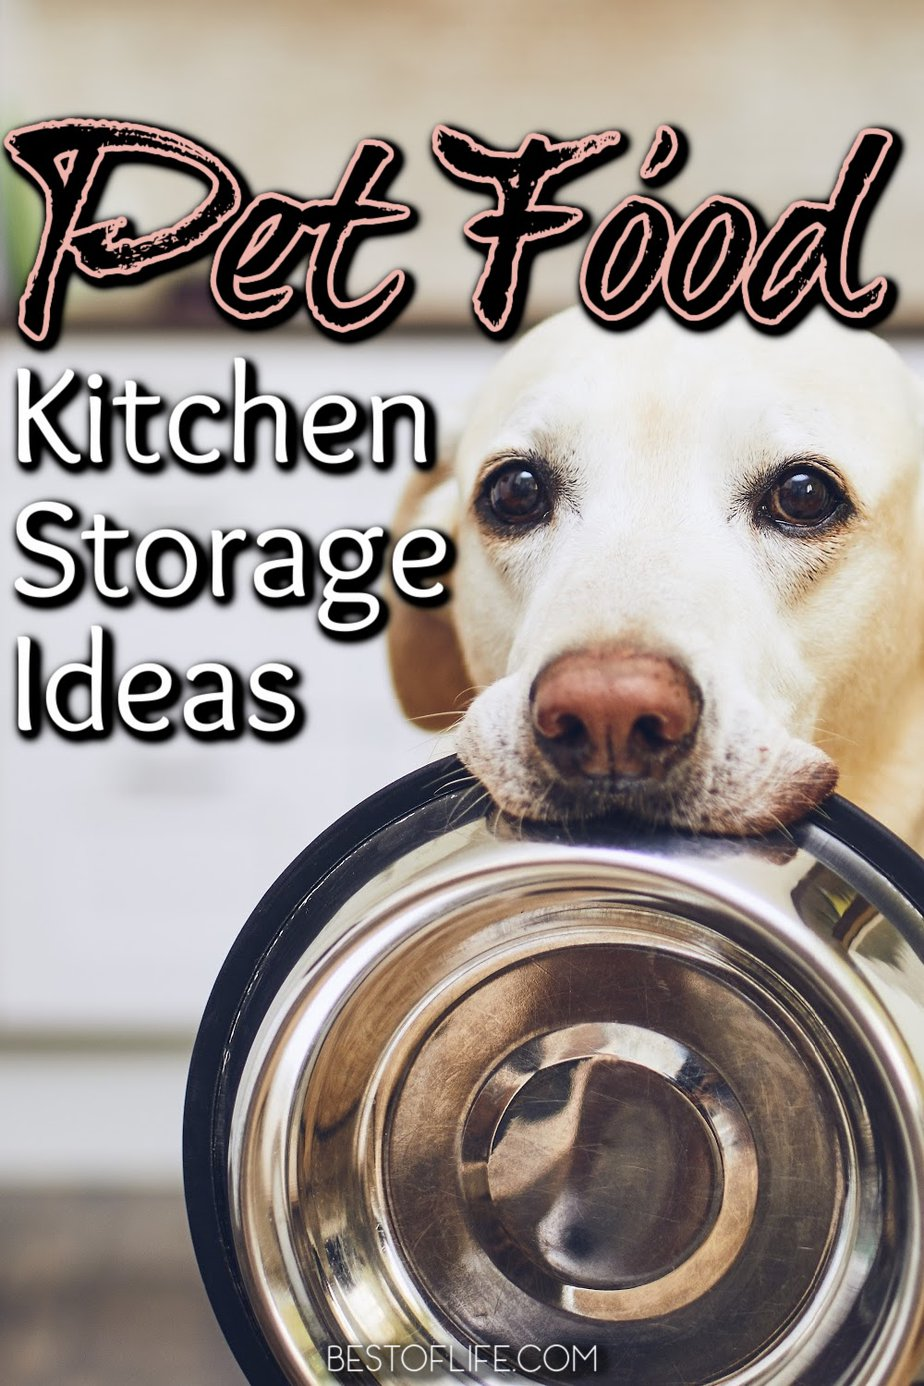 The best pet food storage ideas for kitchens can help you monitor how much food your dog has eaten and make sure it stays fresh and safe to enjoy. Pet Food Storage Container   Unique Dog Food Storage Containers   Pet Food Storage Cabinet   Pet Food Packaging   Pet Food Station   Storage Ideas for Pet Food   Dog Food Storage   Canned Pet Food Storage Tips   Cat Food Tips   Healthy Cat Food Ideas #pets #petfood via @thebestoflife